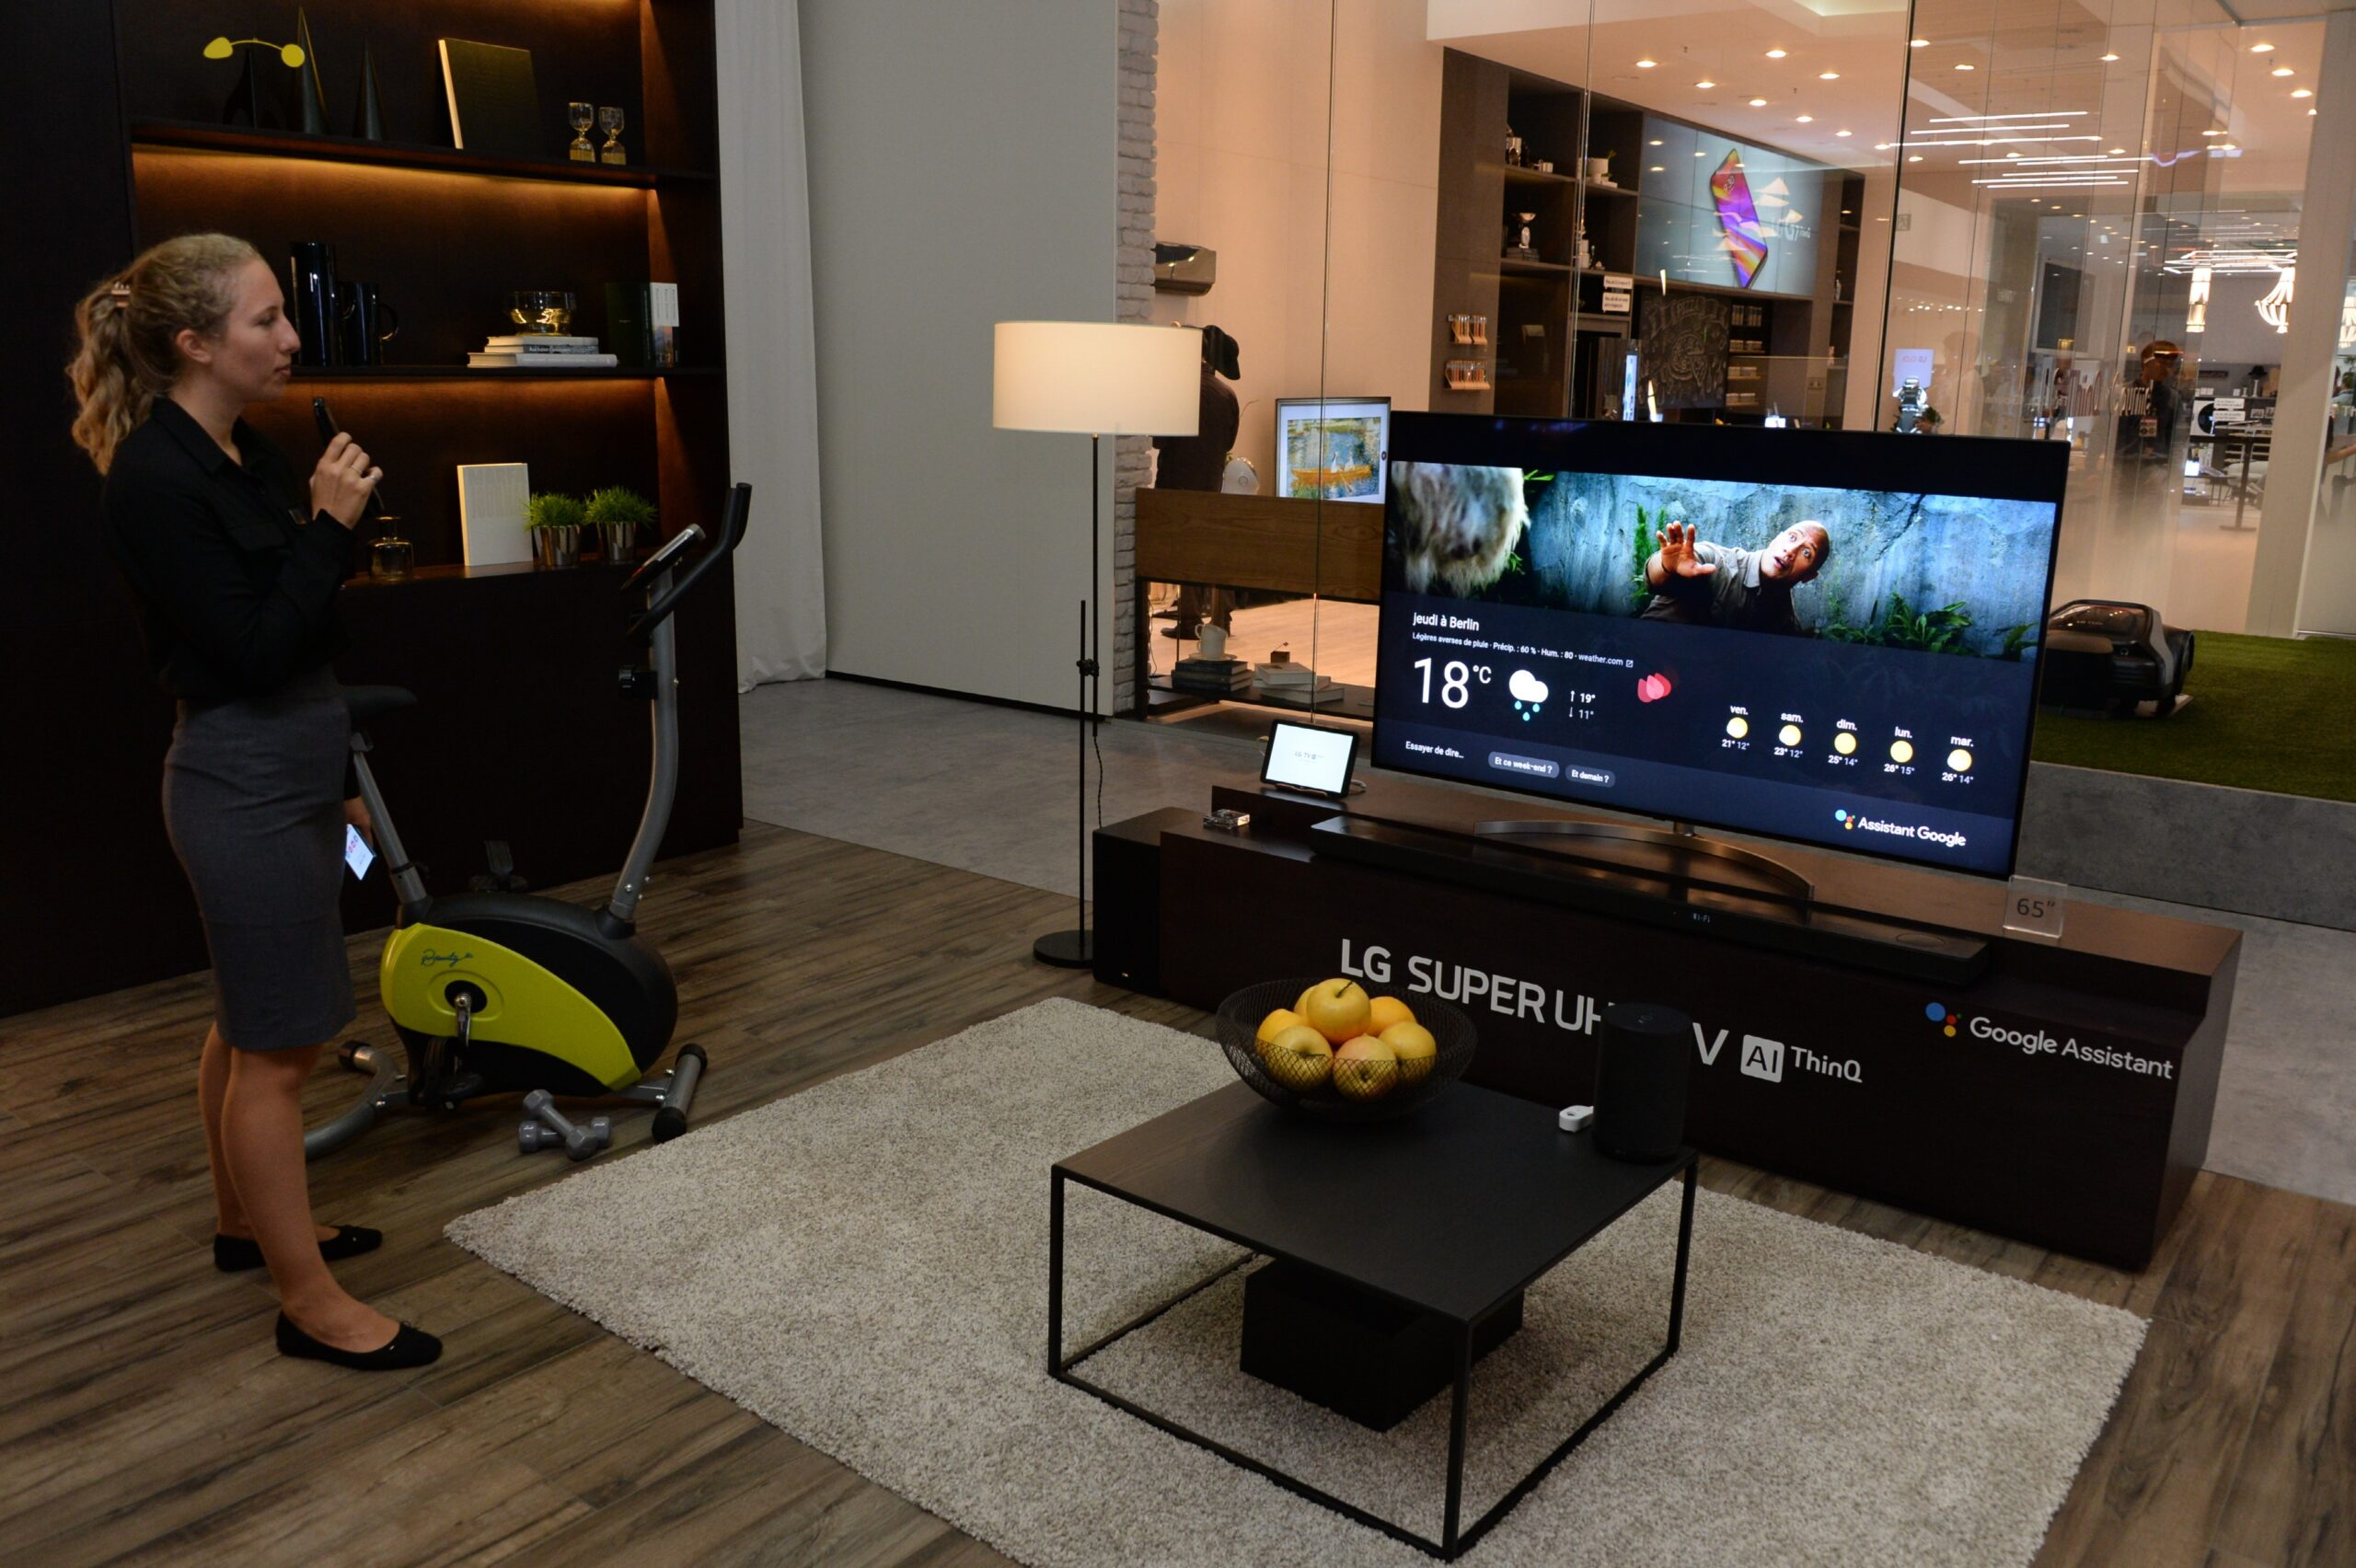 A female attendant holding the Magic Remote stands next to the LG SUPER UHD TV AI ThinQ with Google Assistant to try out the AI voice assistant feature.